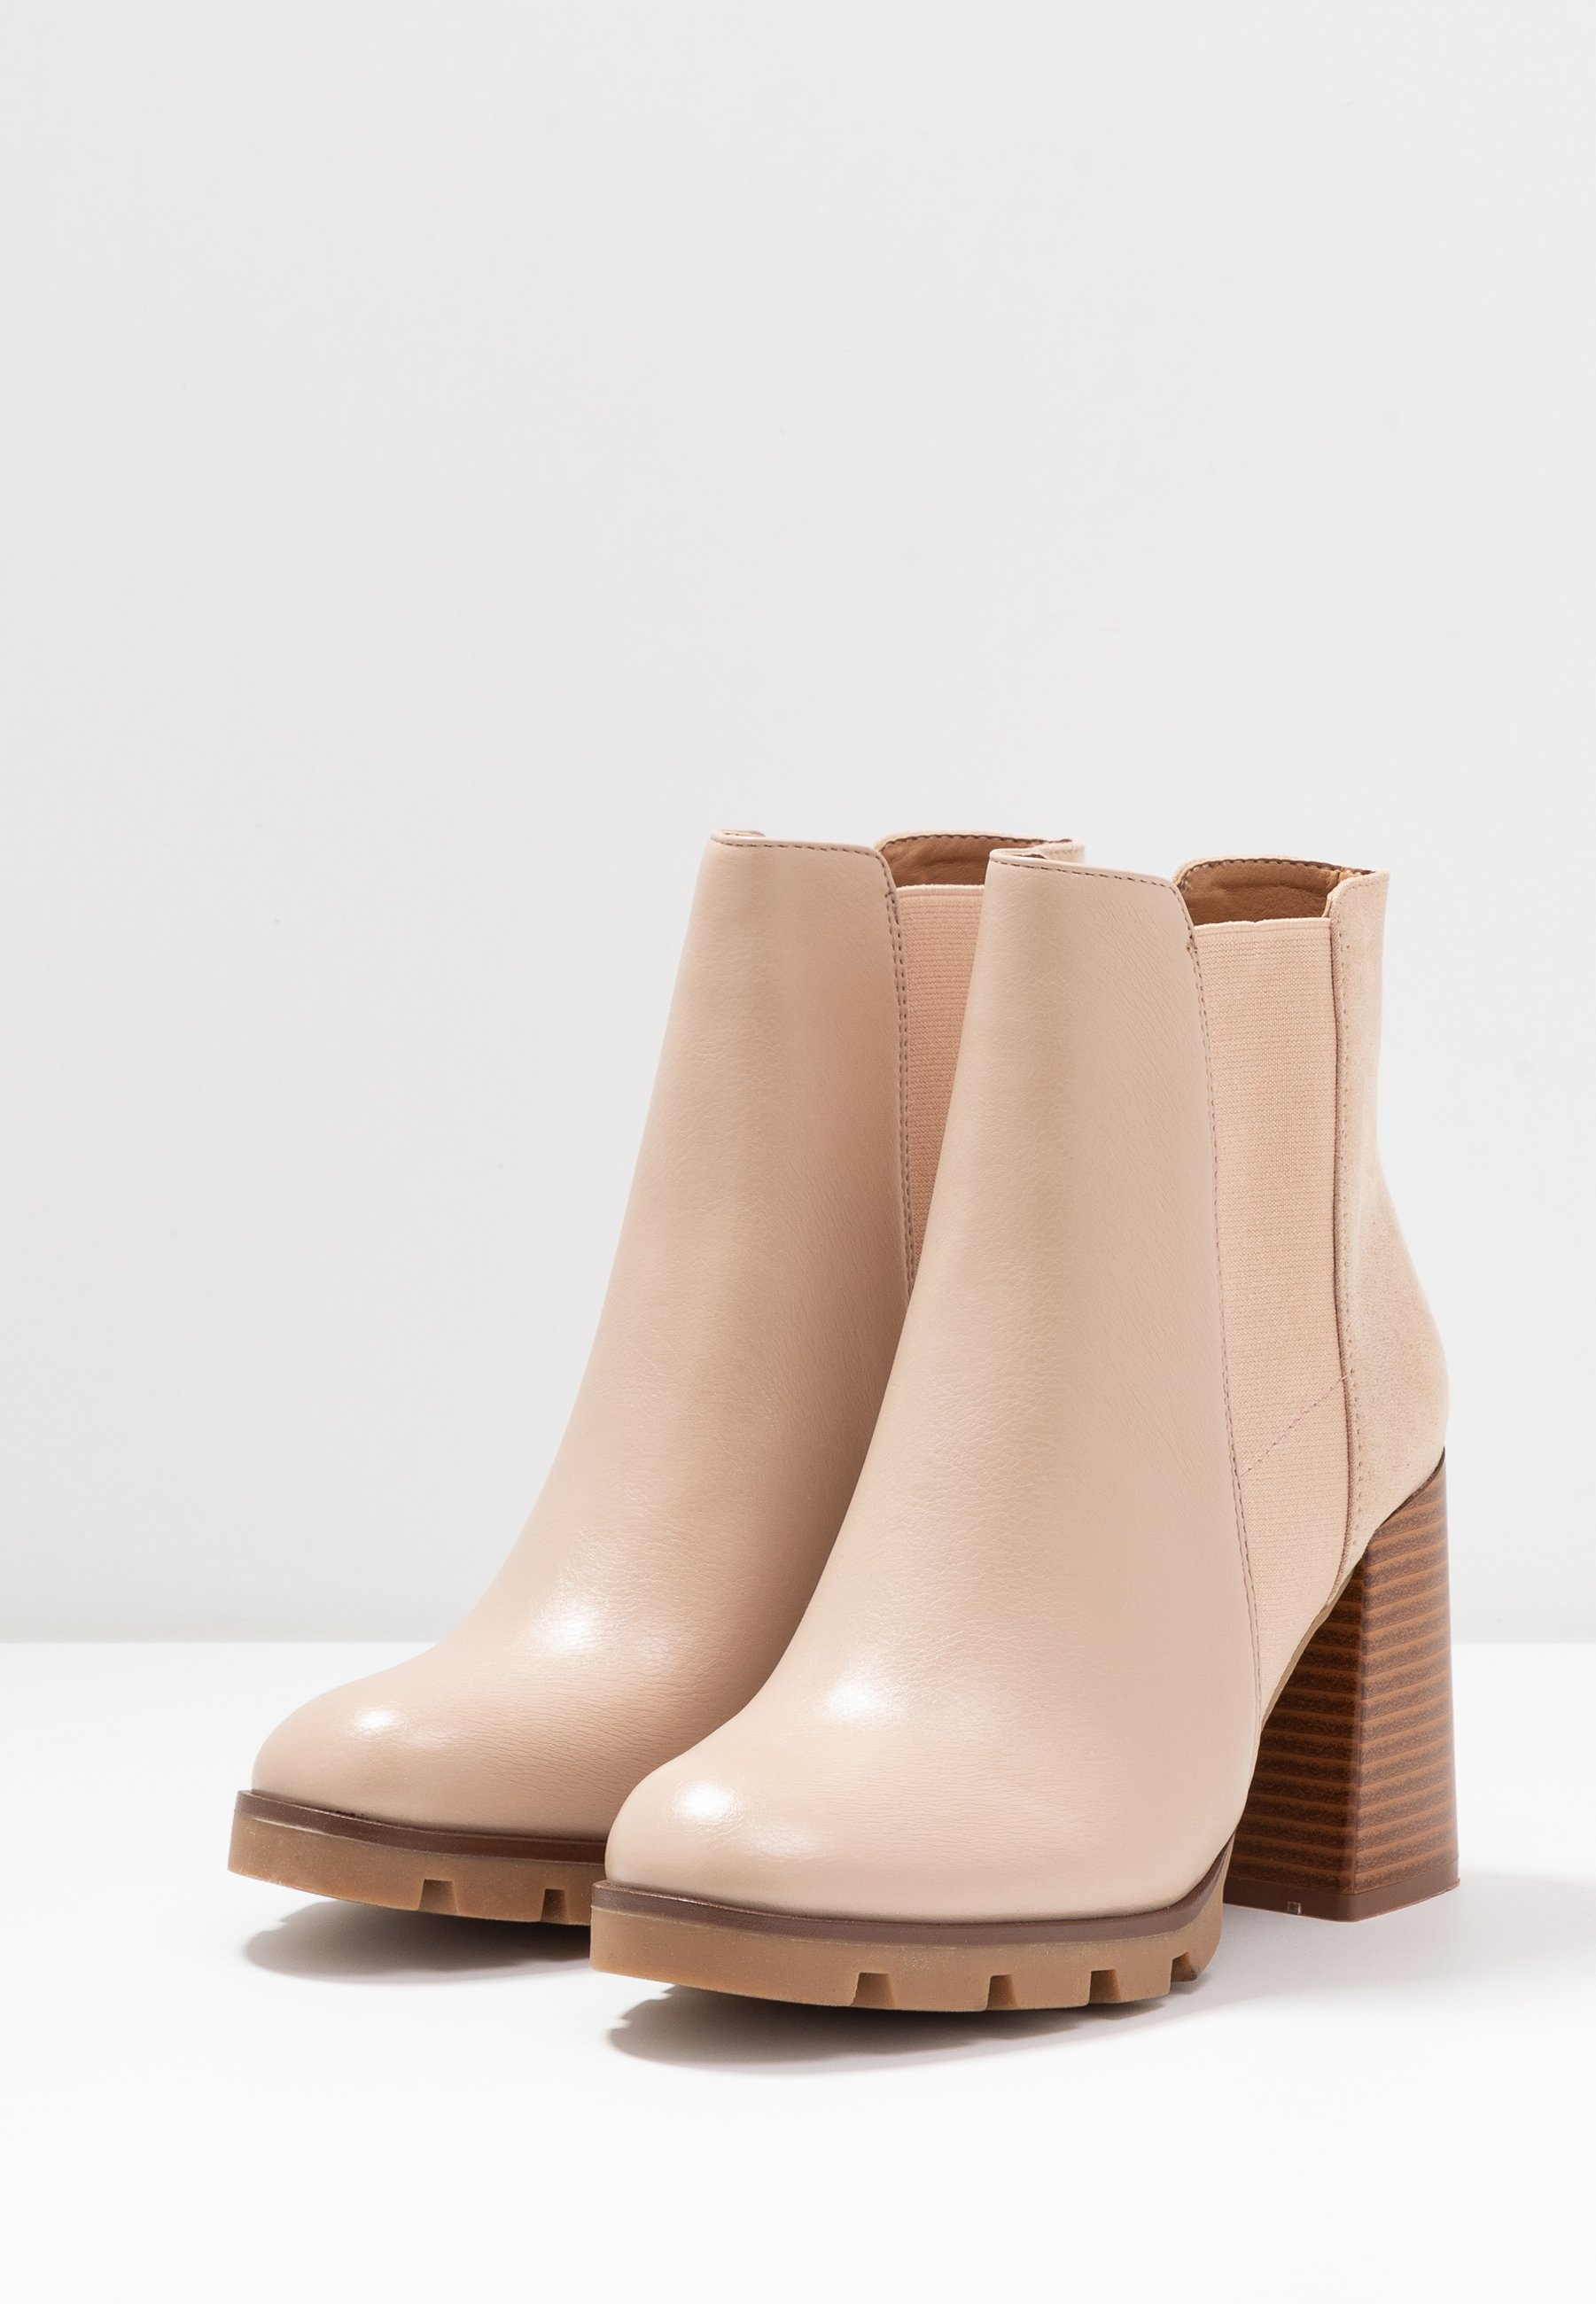 Limited New Cheapest Anna Field High heeled ankle boots - beige | women's shoes 2020 EyCDQ